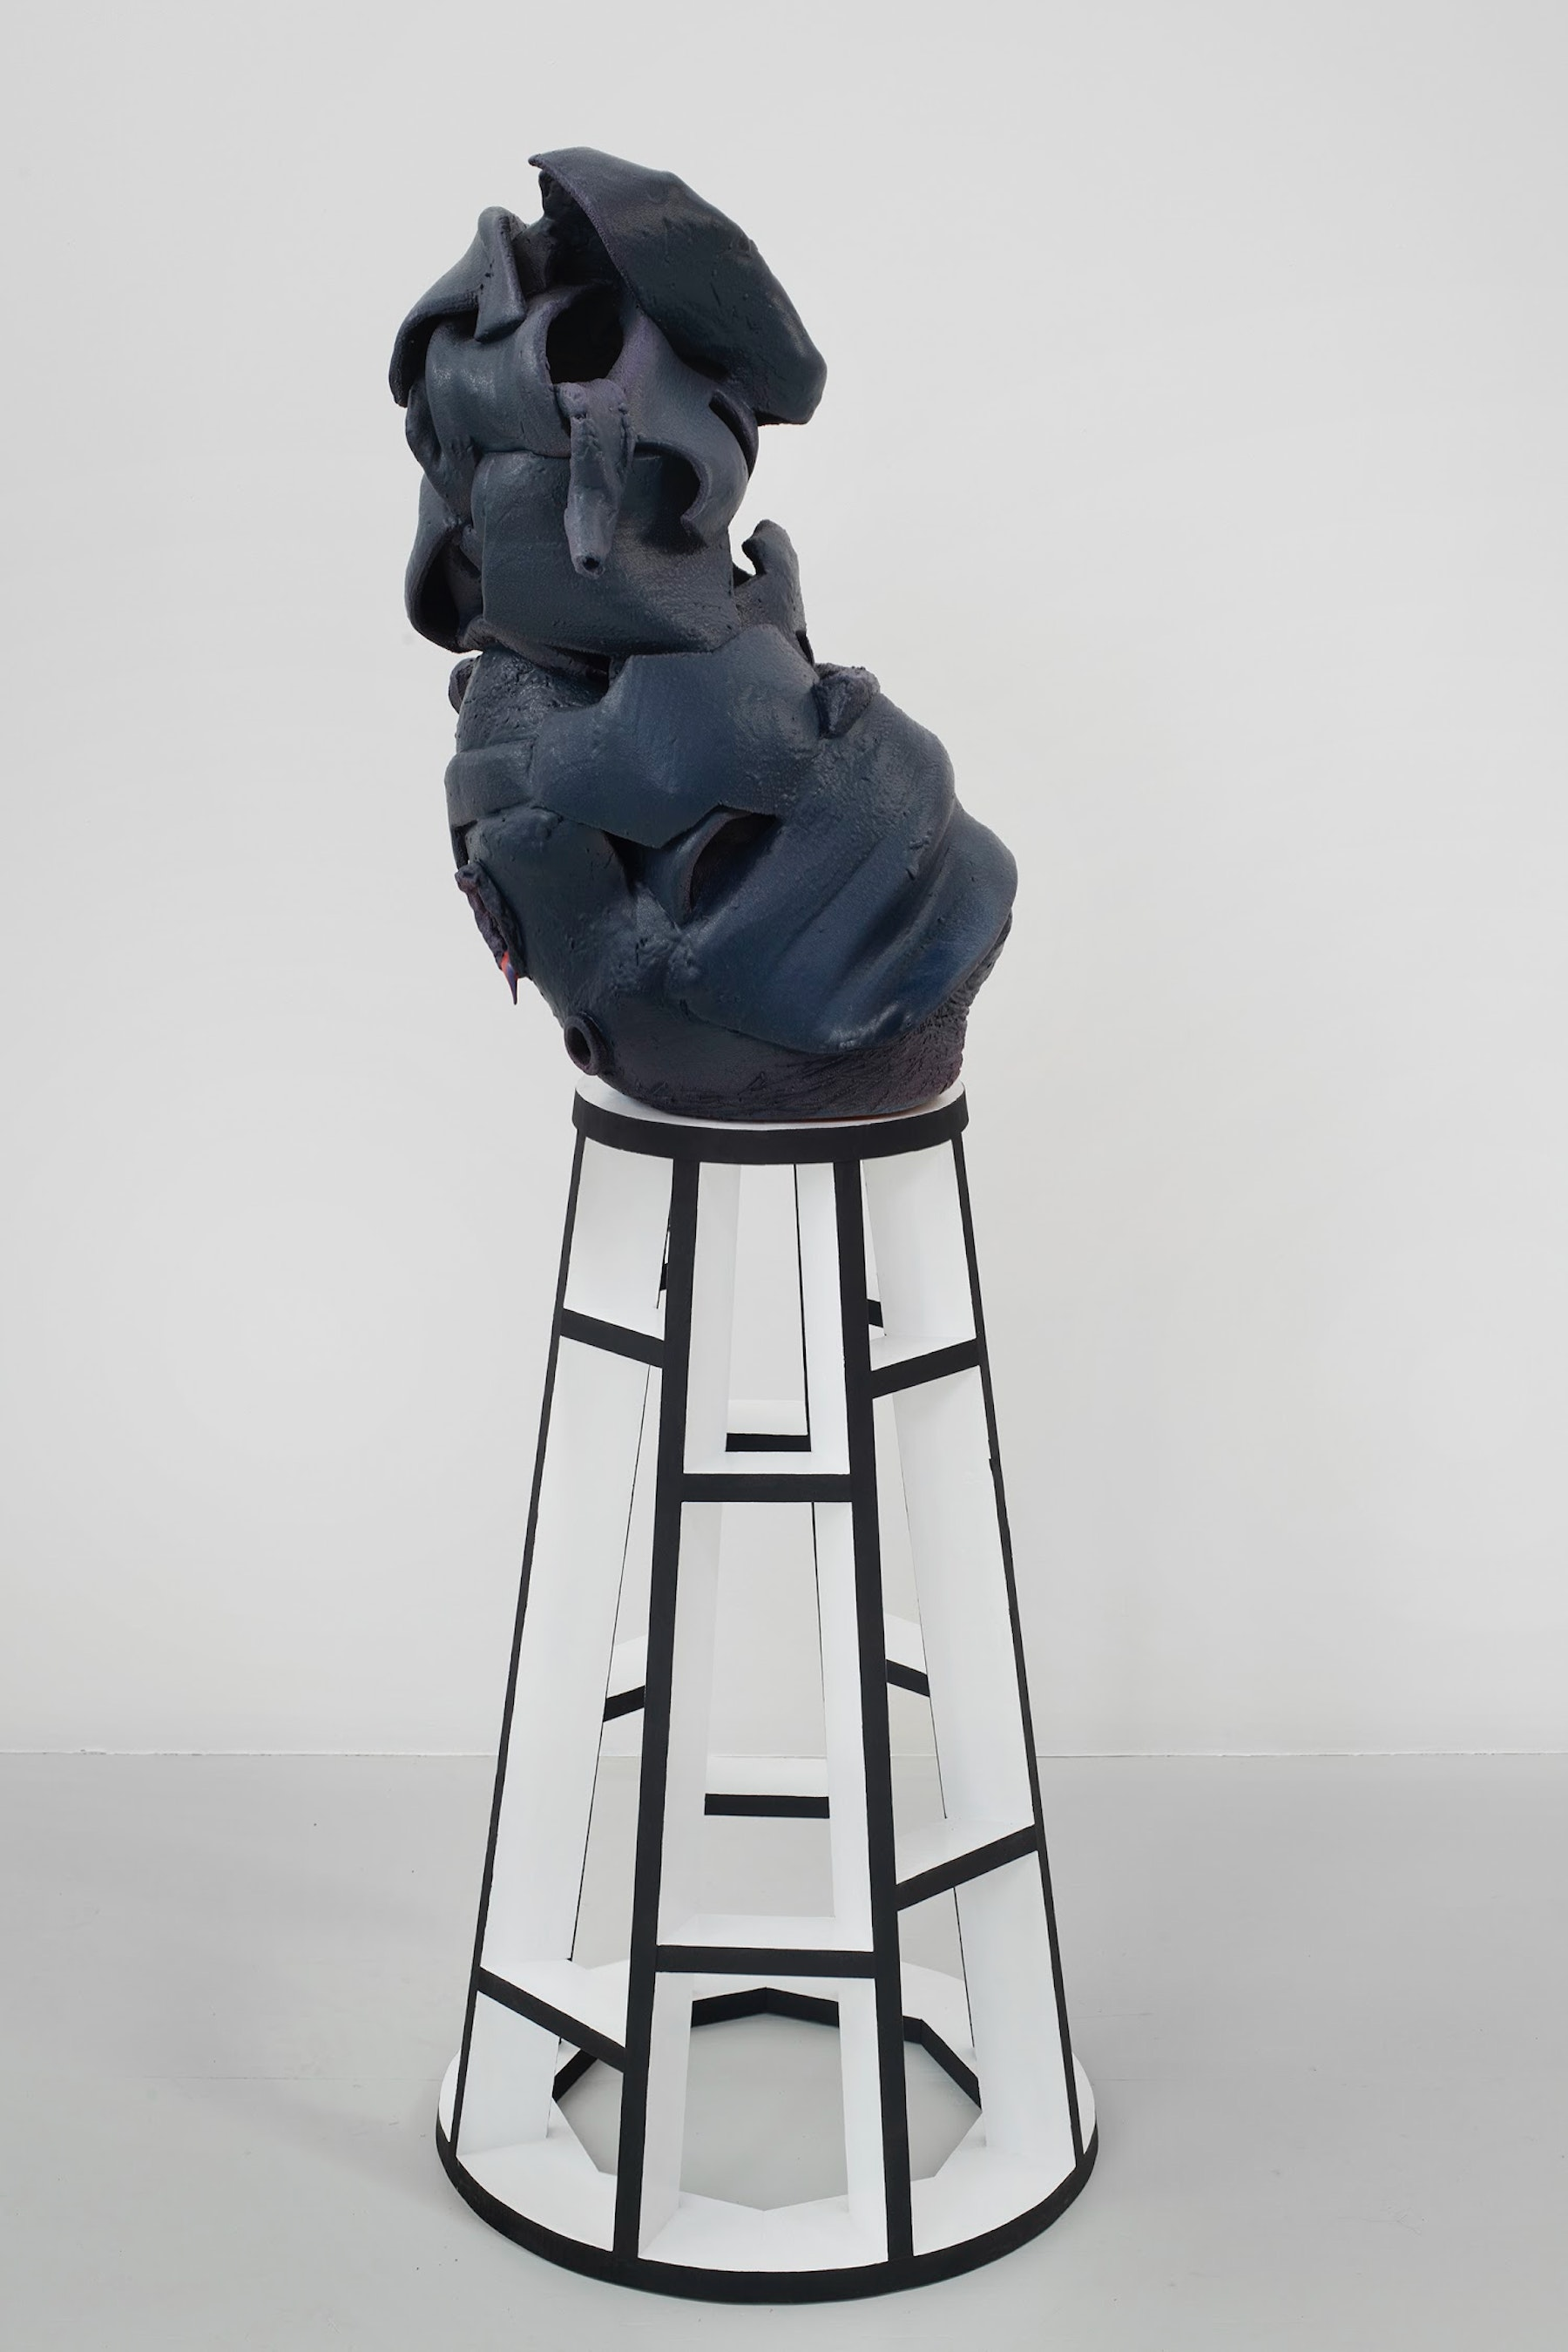 """Arlene Shechet """"Seeing in the Dark,"""" 2019 Glazed ceramic, painted hard wood 60 x 21 x 21"""" [HxWxD] (152.4 x 53.34 x 53.34 cm) Inventory #SHE131 Courtesy of the artist and Vielmetter Los Angeles. © Arlene Shechet Photo credit: Phoebe d'Heurle"""